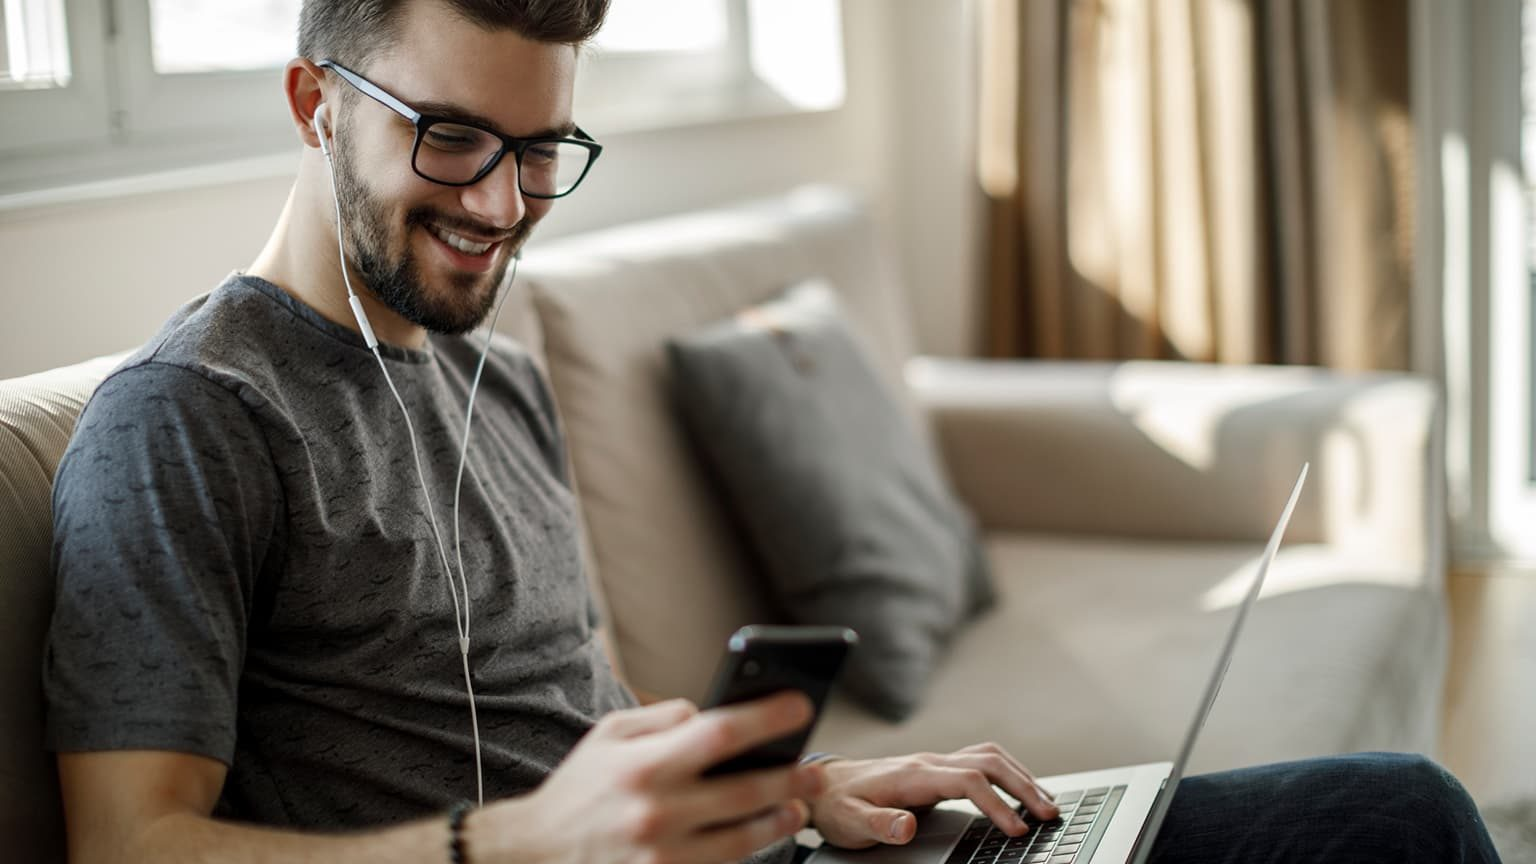 Young man using social media at home with laptop and mobile phone